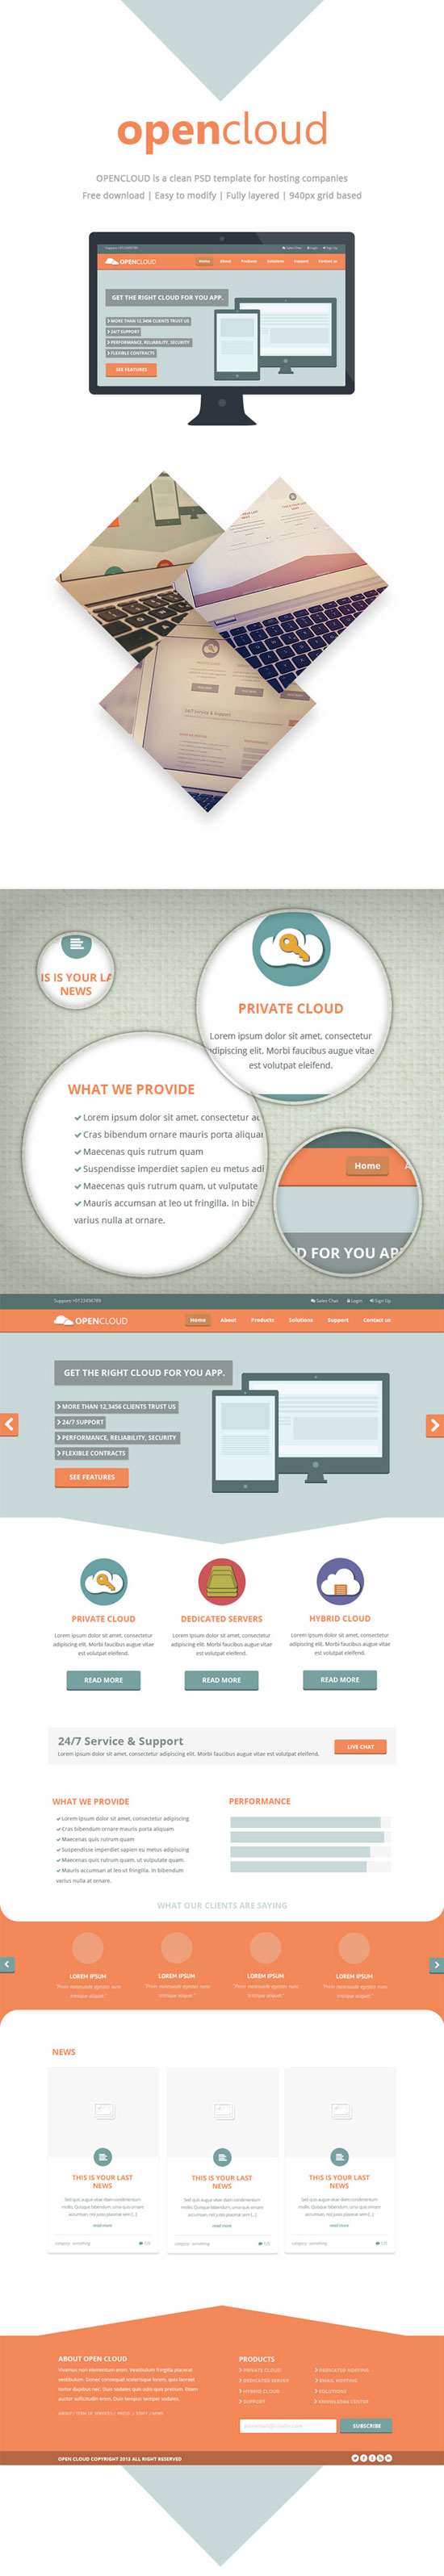 Best Free PSD Templates